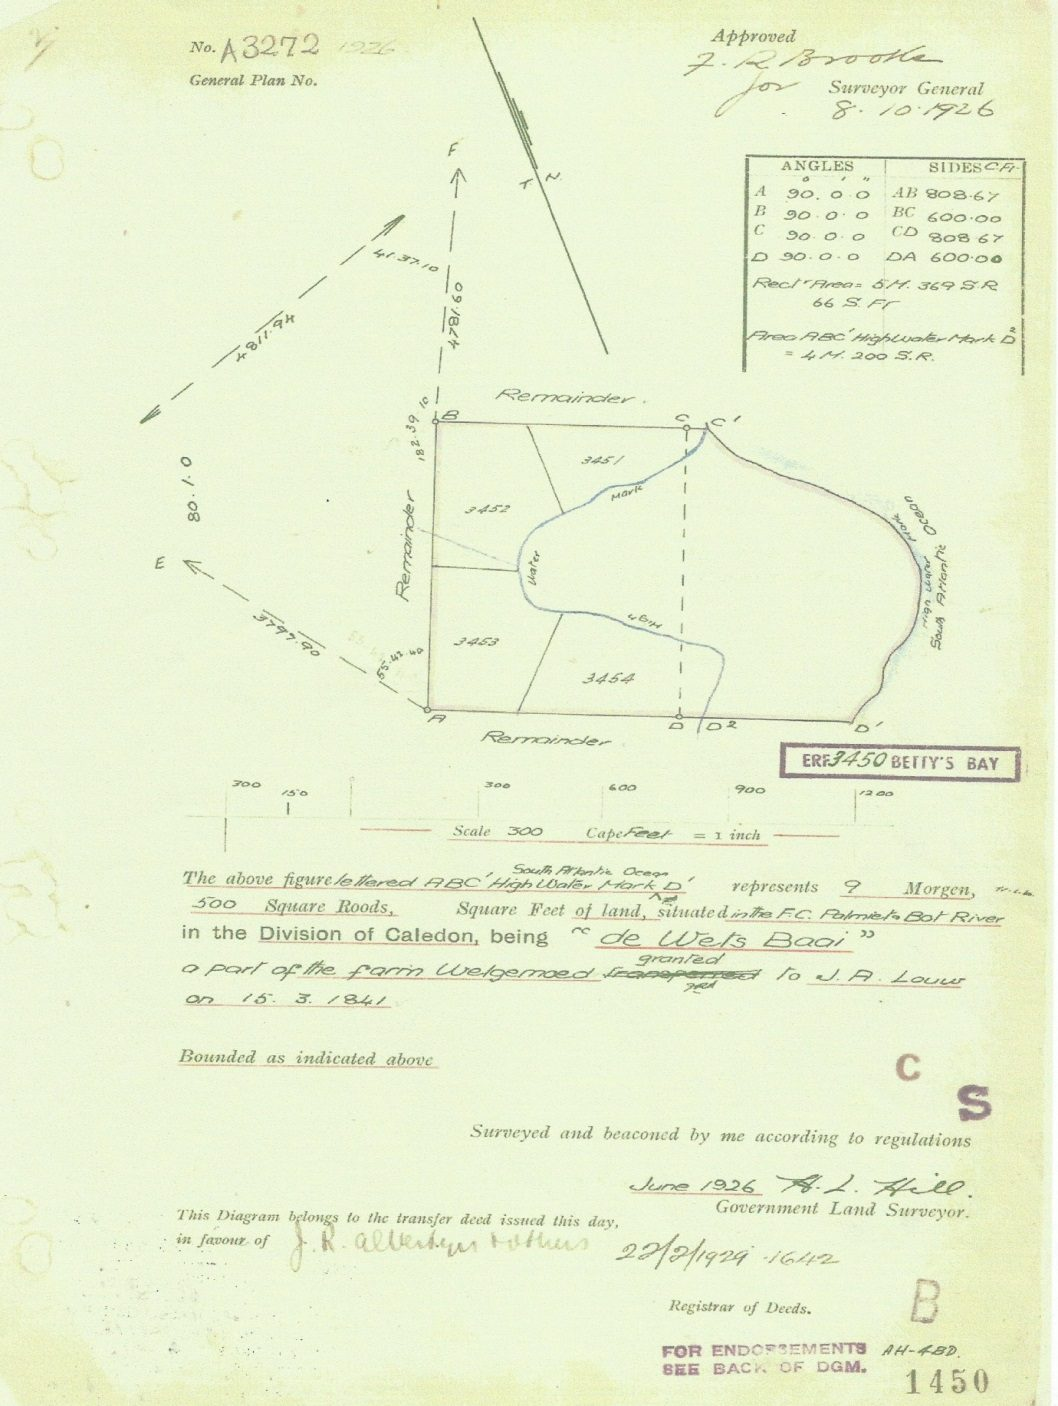 Surveyor General diagram, 1926